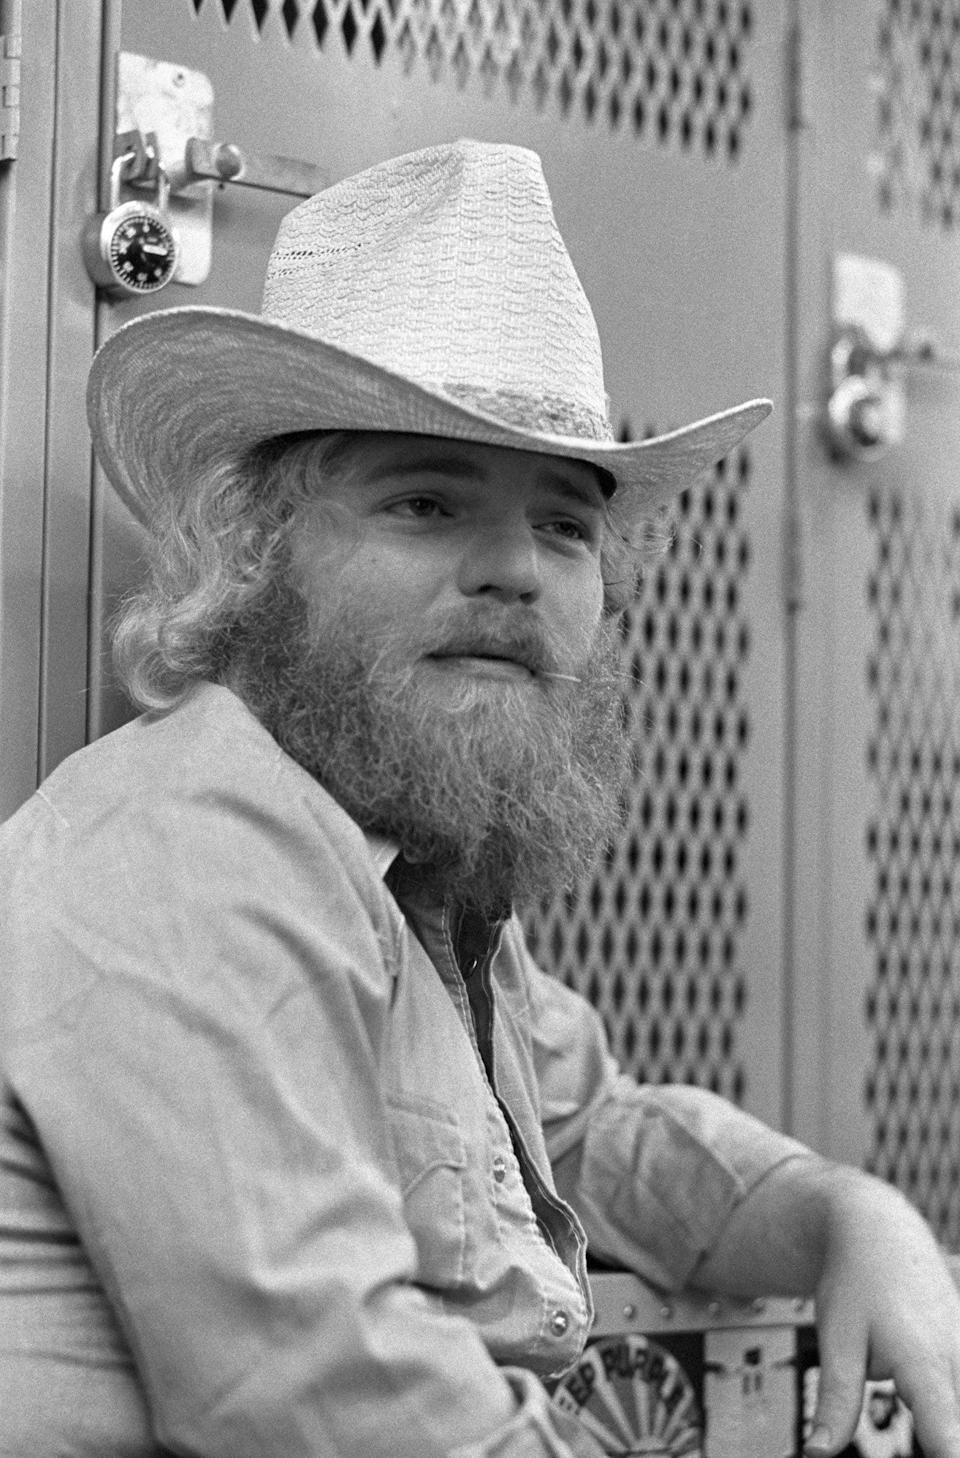 Dusty Hill in 1973 - Tom Hill/WireImage